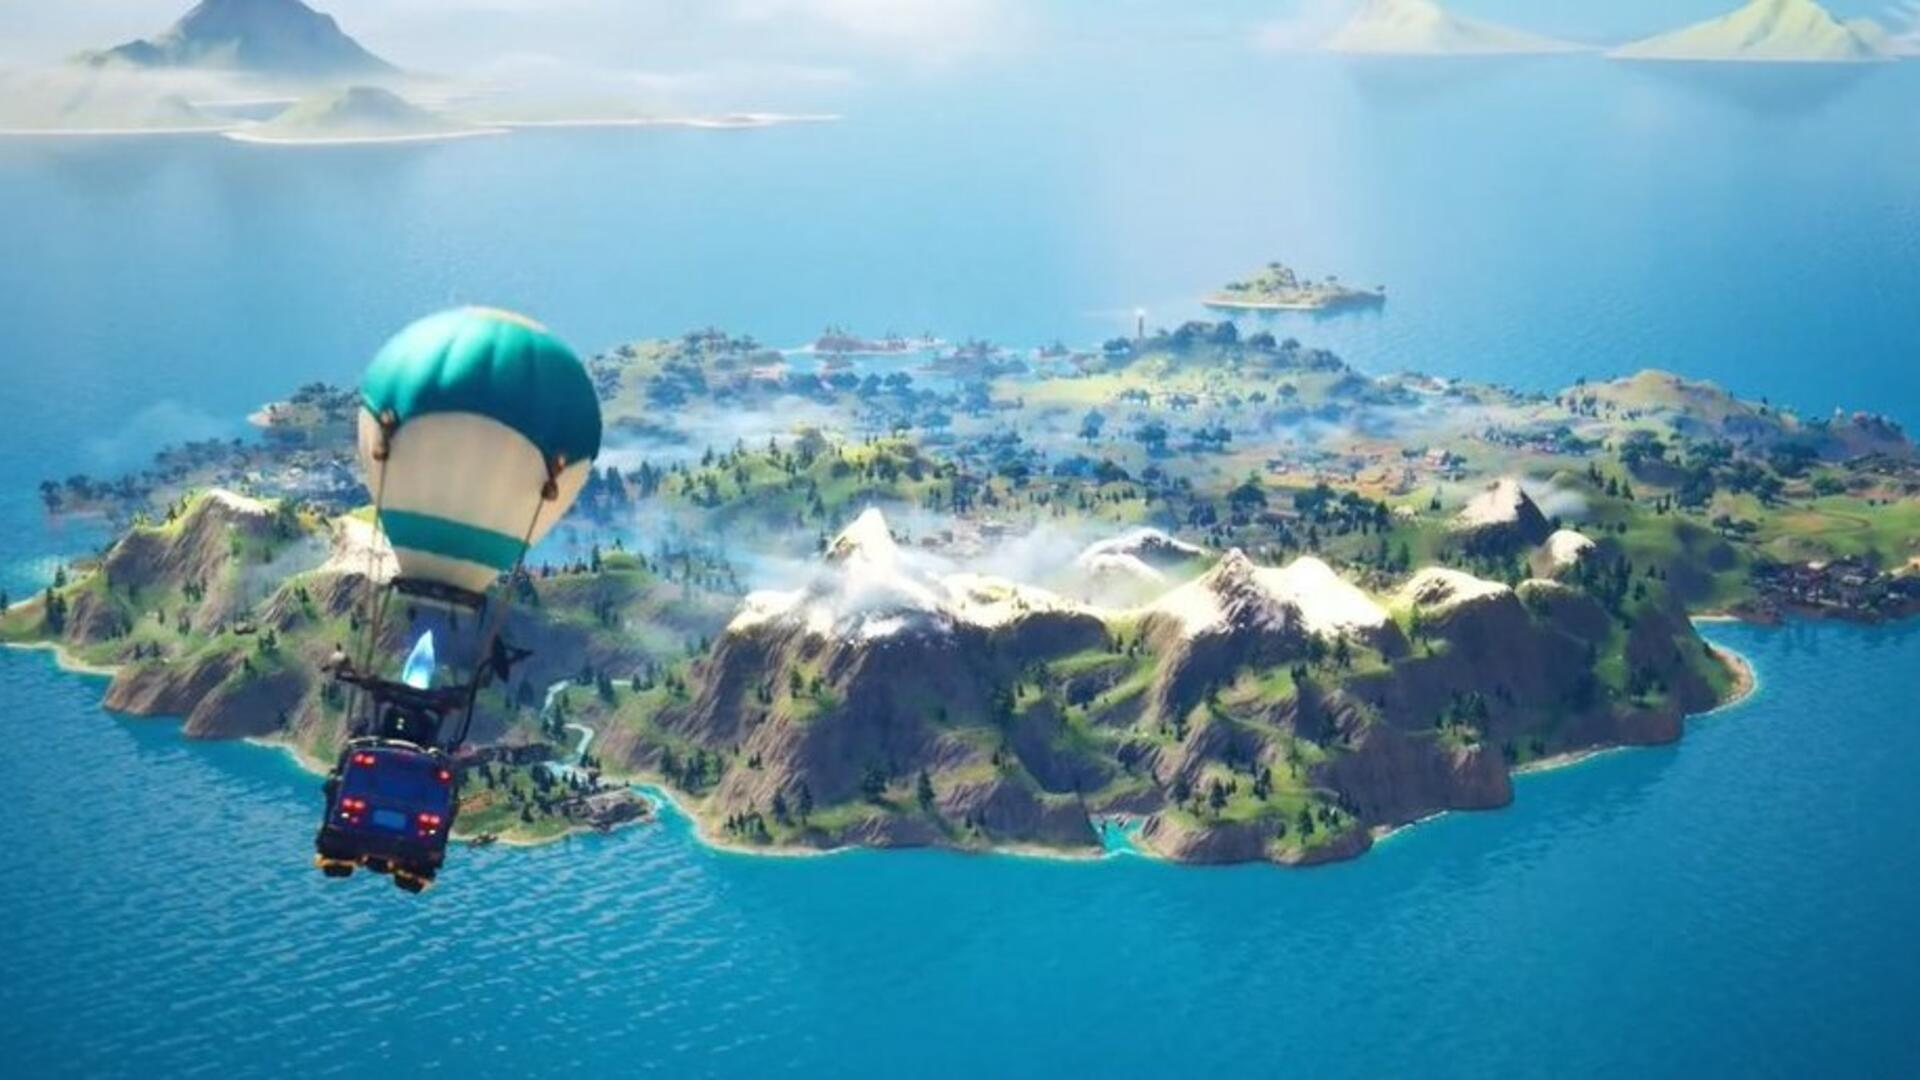 Fortnite XP Guide - How to Earn XP and Increase Your Level